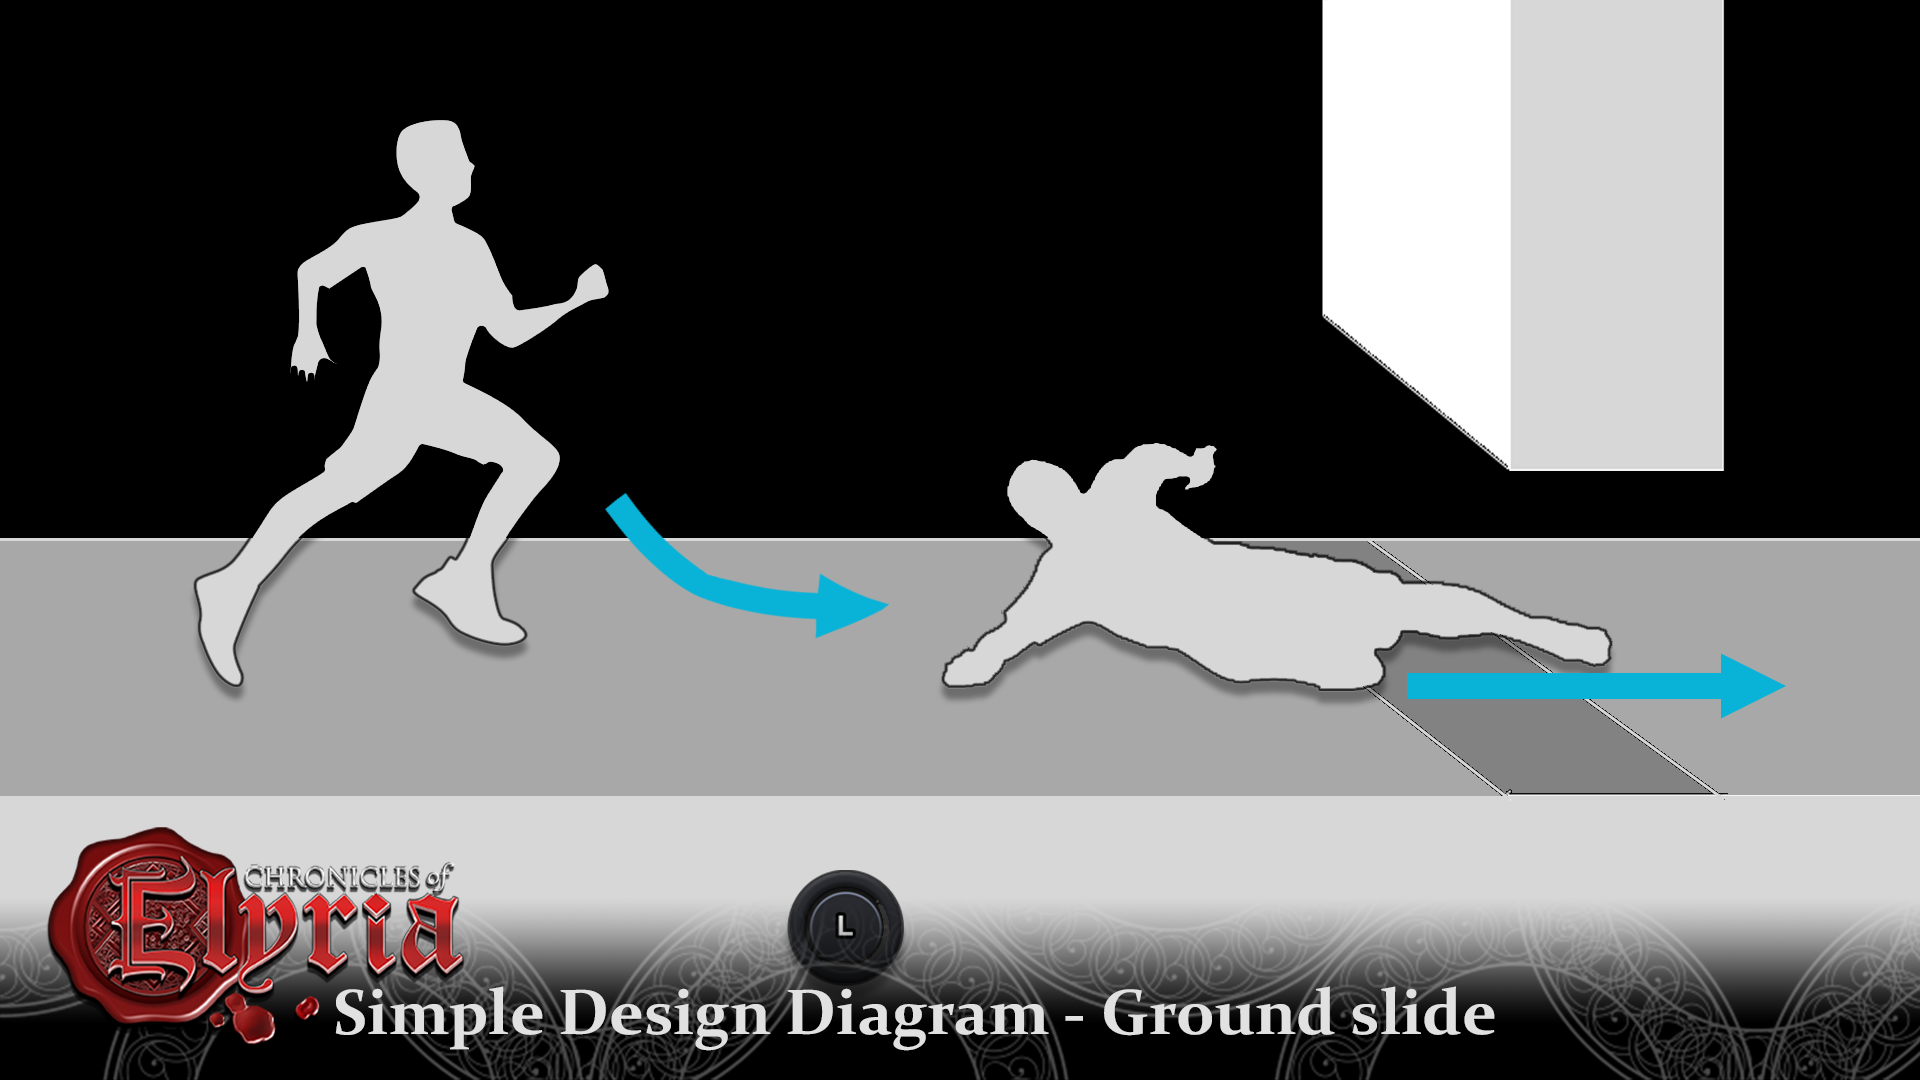 Ground Slide Diagram image